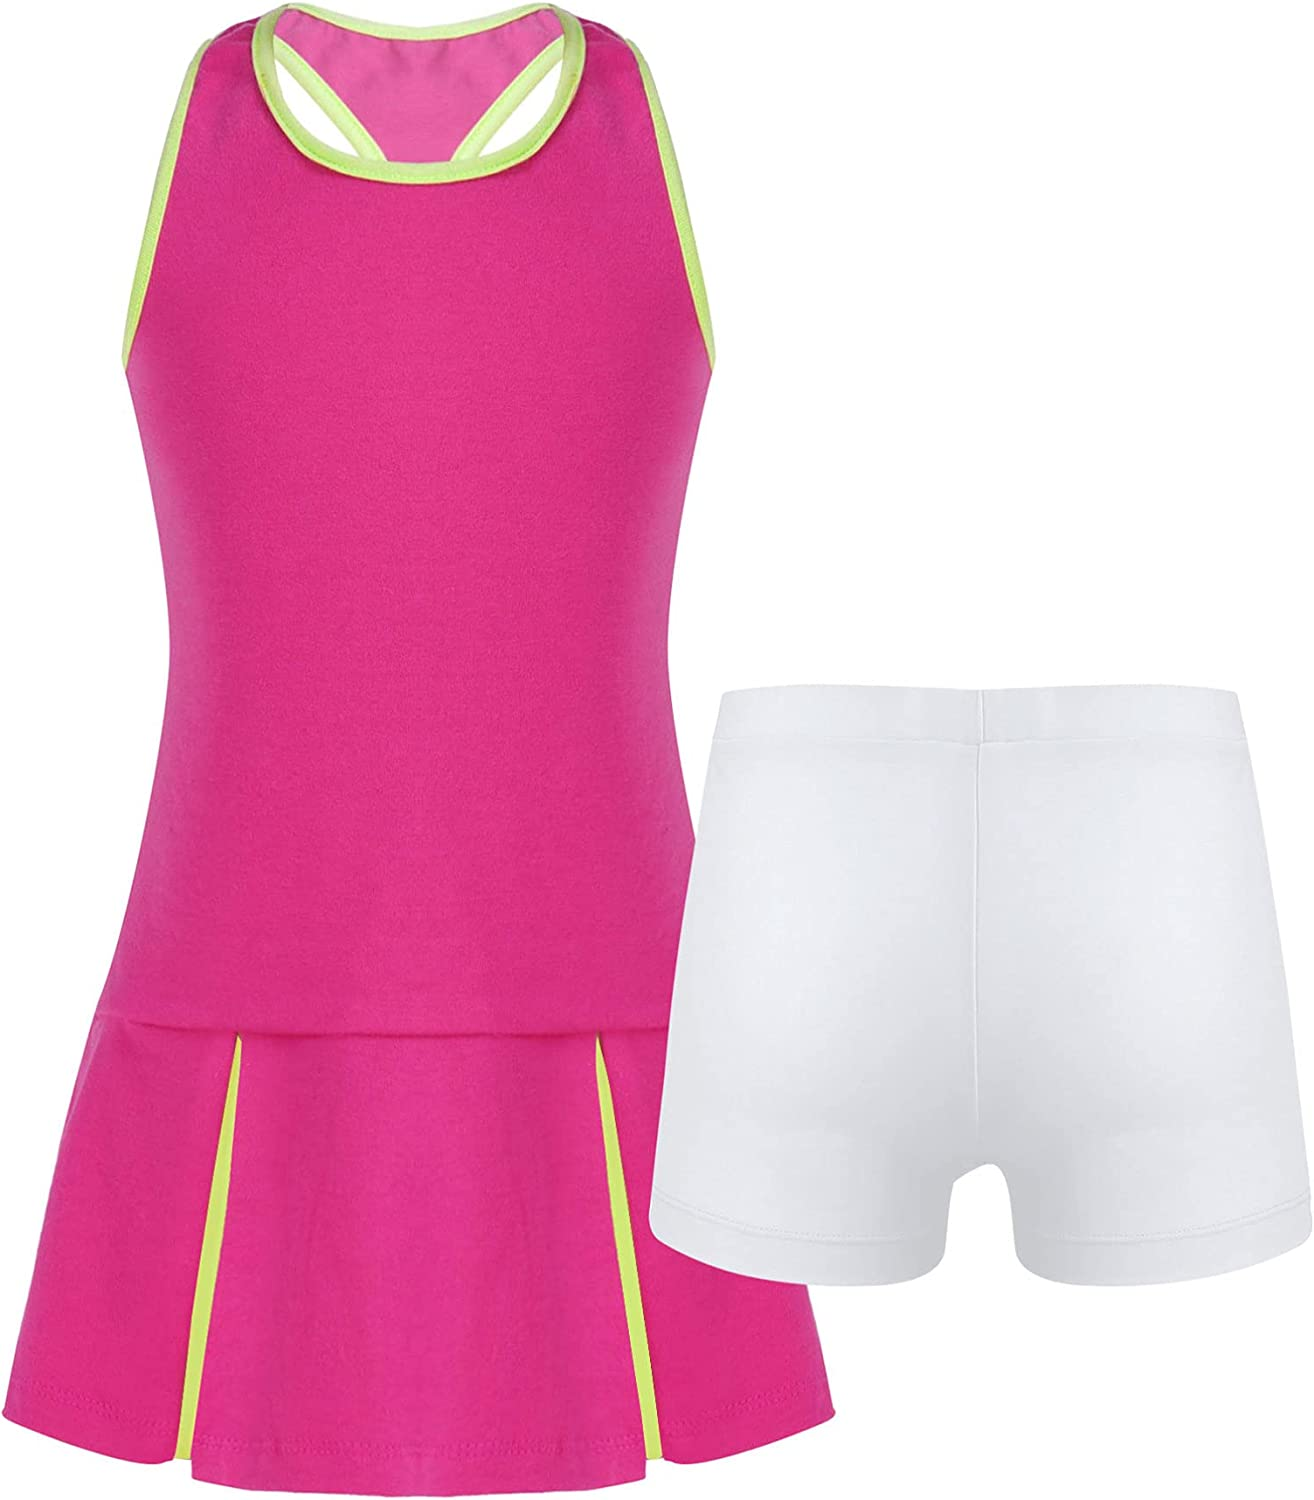 TiaoBug Youth Girls Tennis Ultra-Cheap Deals Dress with Shorts Outfits Max 67% OFF Underpants